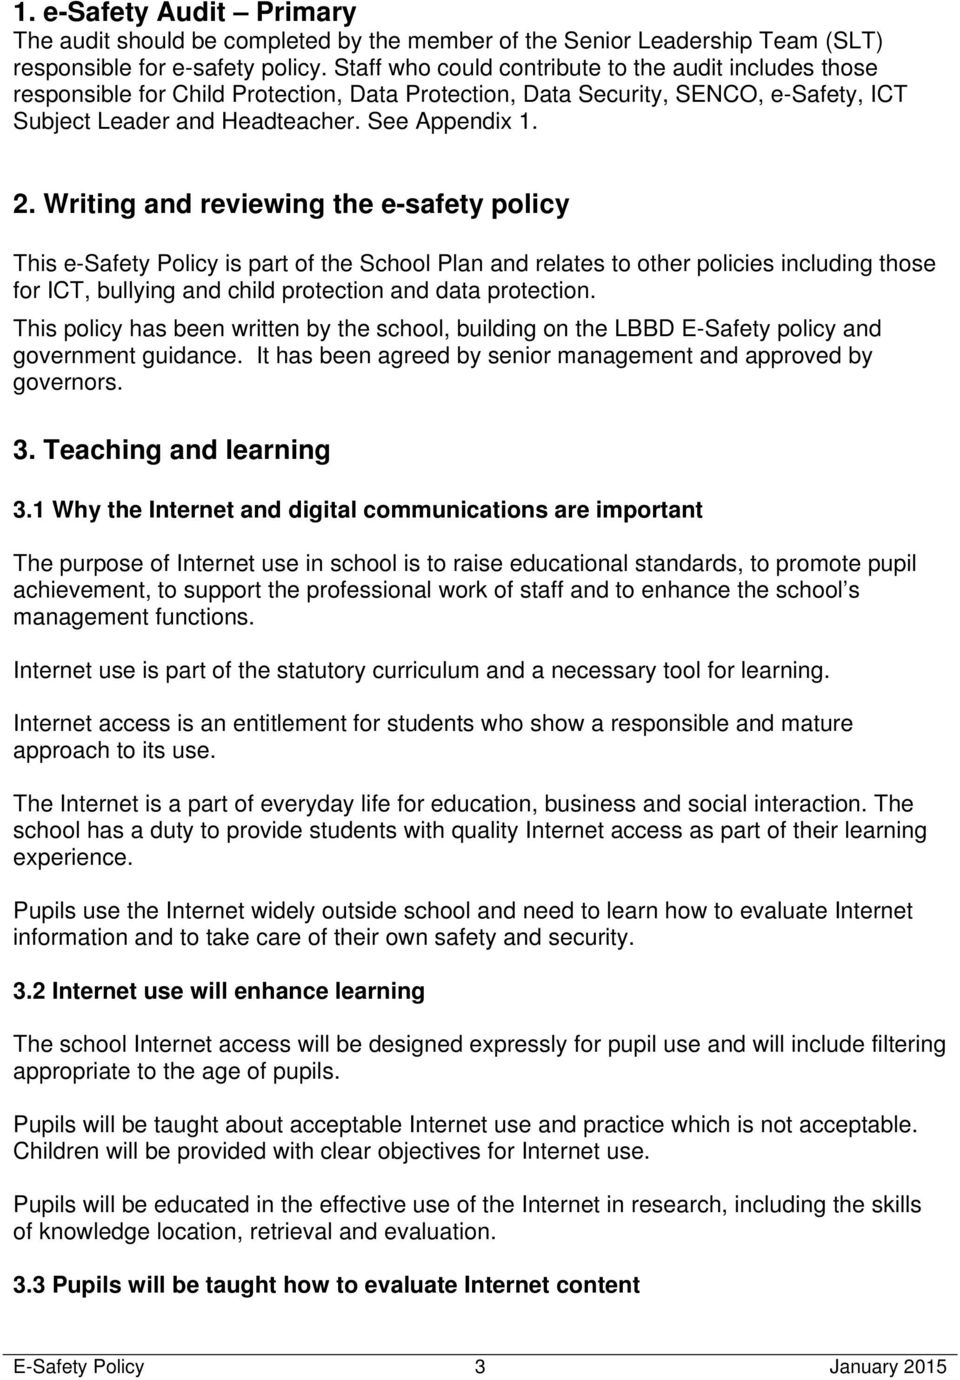 Writing and reviewing the e-safety policy This e-safety Policy is part of the School Plan and relates to other policies including those for ICT, bullying and child protection and data protection.